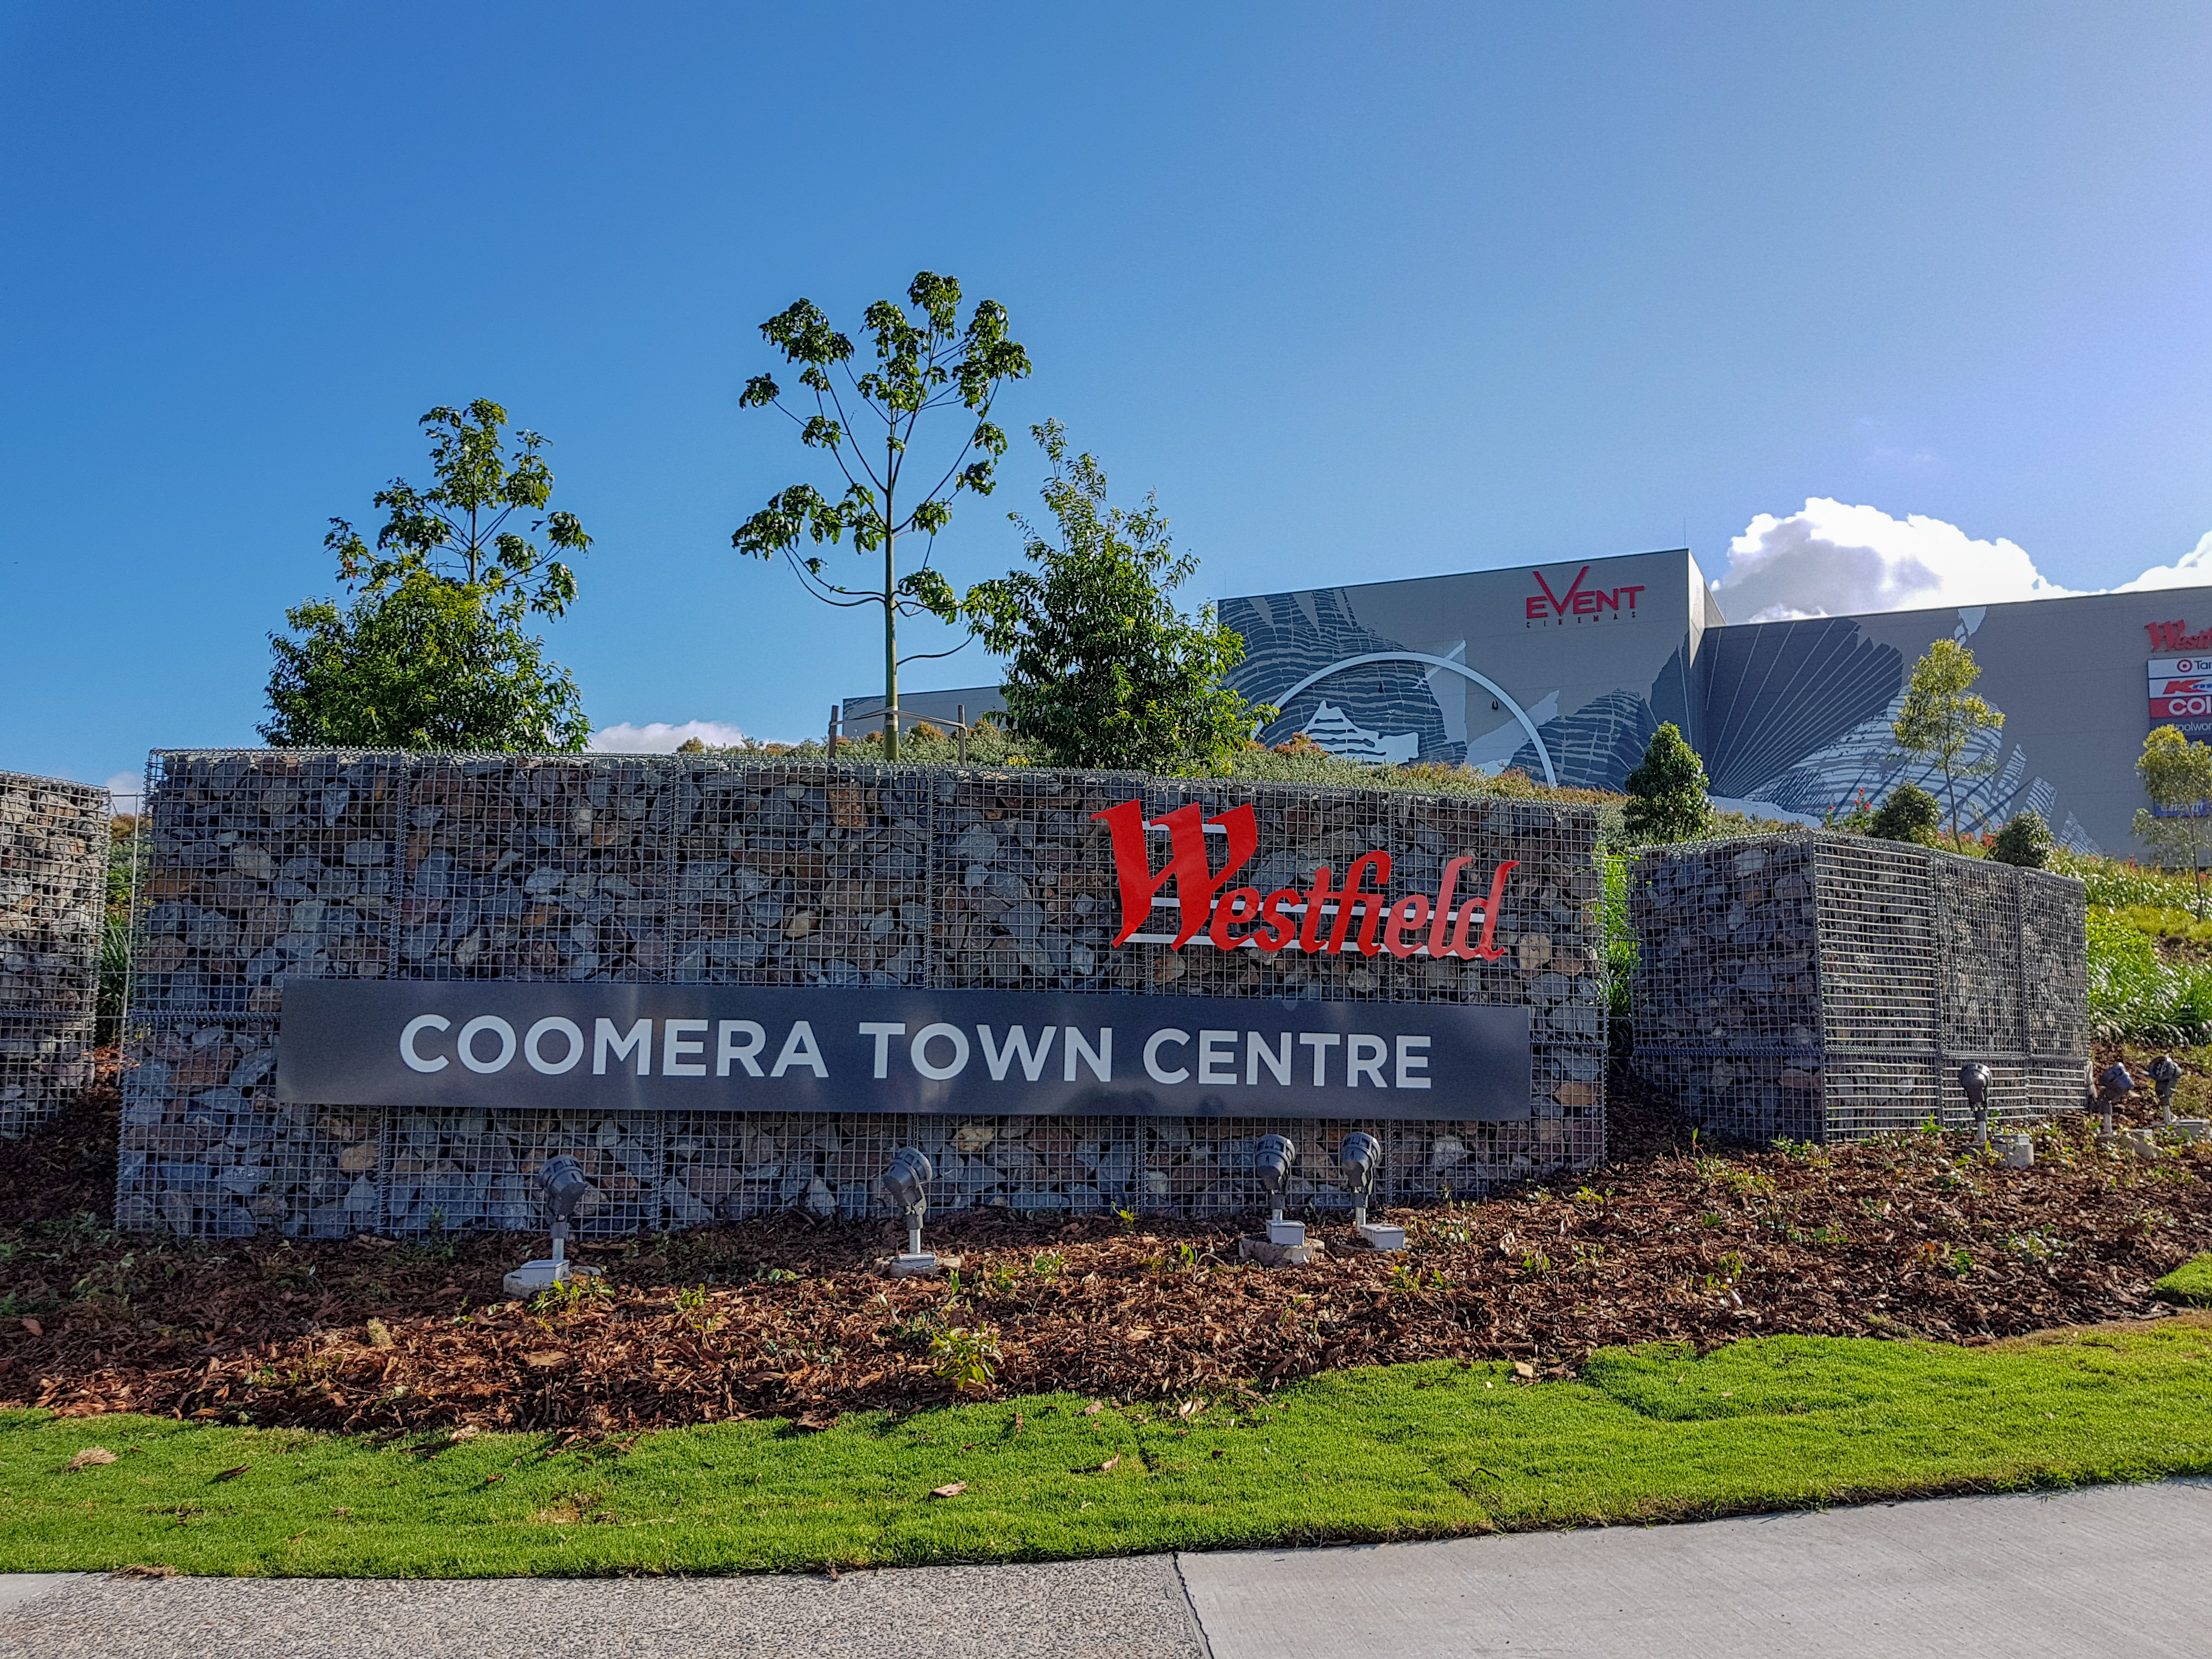 181022_Coomera Westfield A